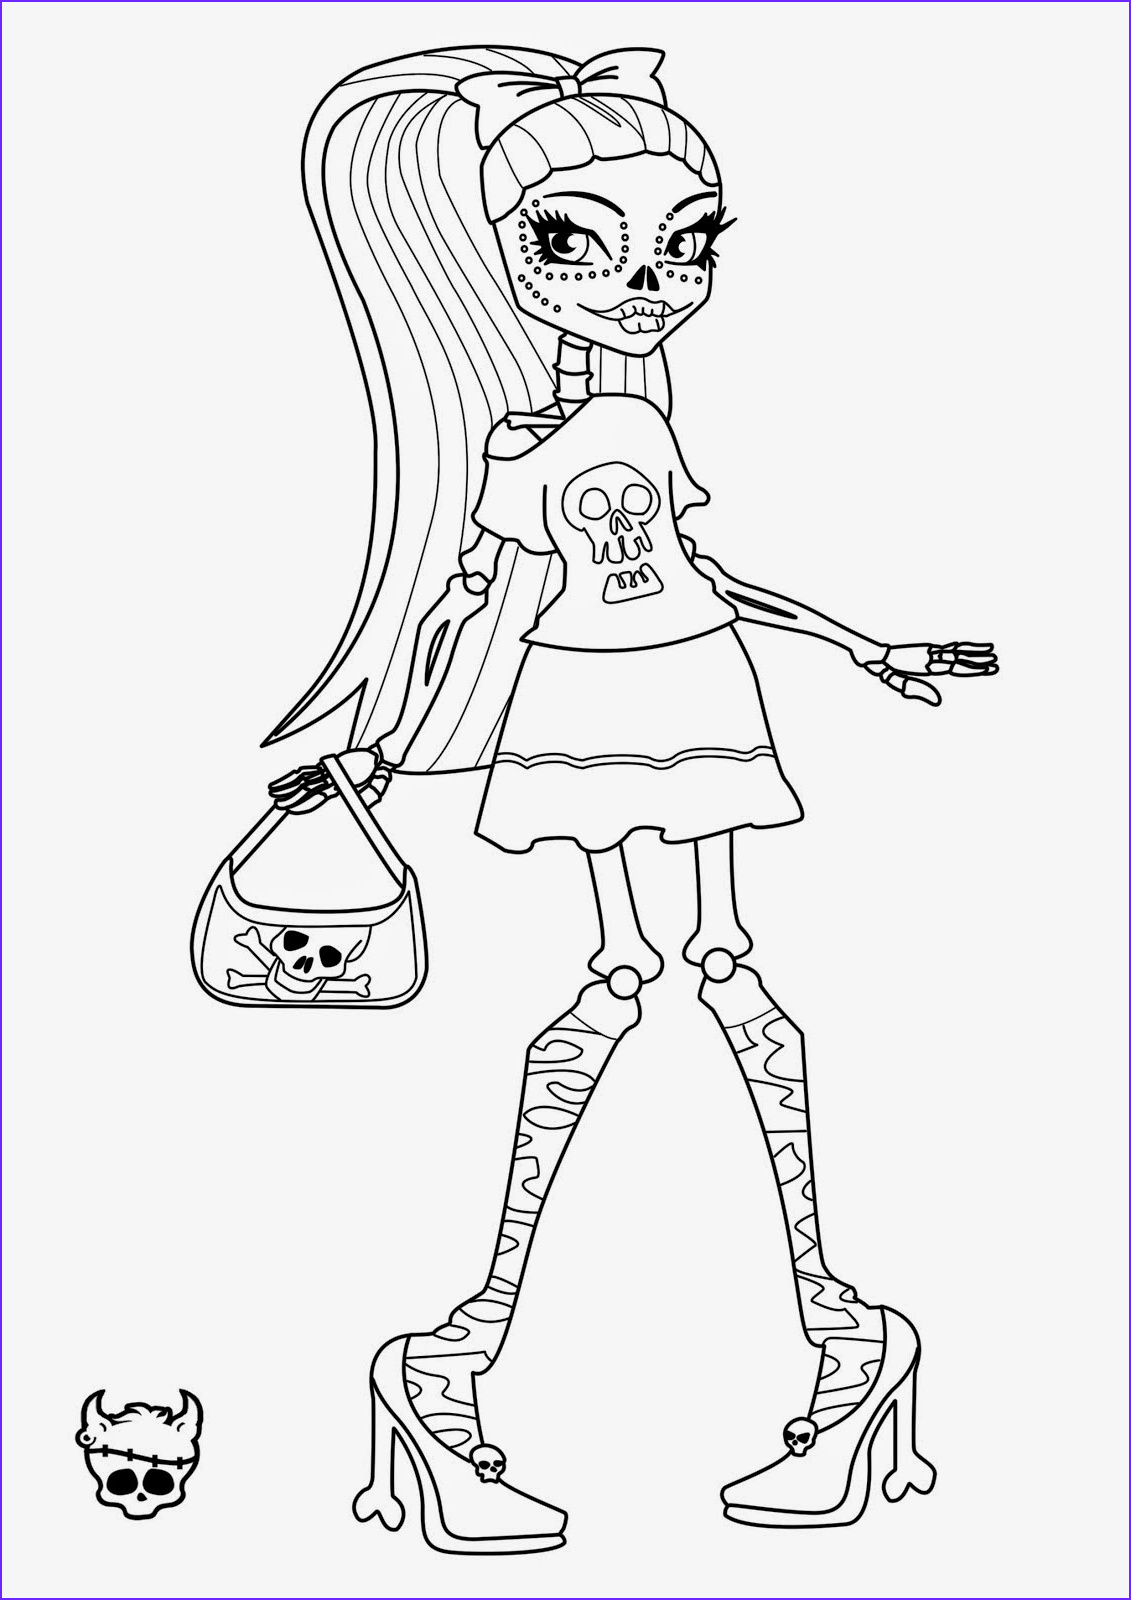 Monster High Coloring Pages Pdf Best Of Photography Coloring Pages Monster High Coloring Pages Free And Printable